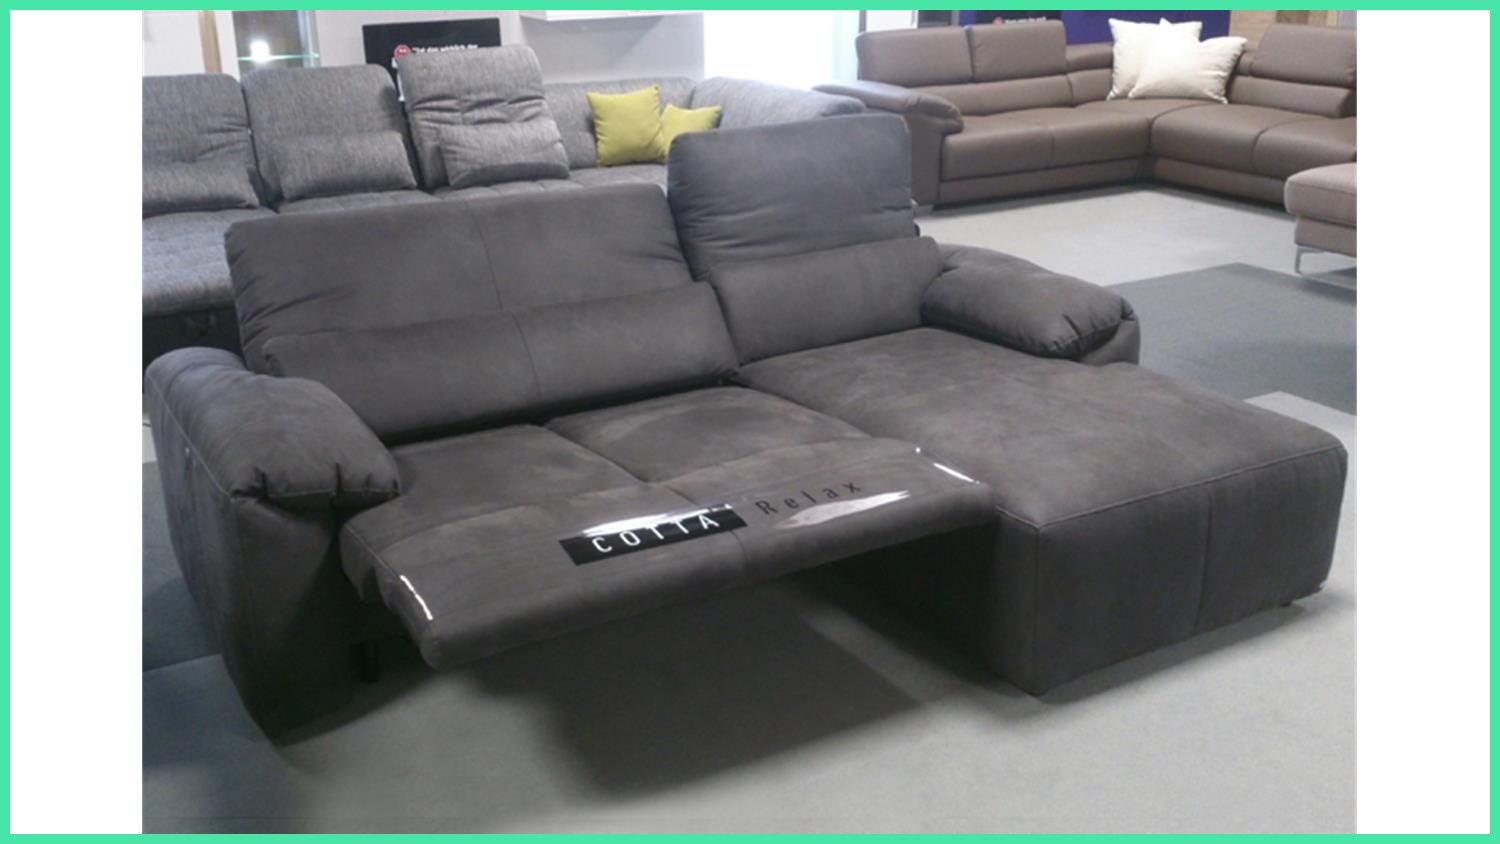 12 Lebendig Ecksofa Mit Relaxfunktion Stoff In 2020 Sofa Home Decor Sectional Couch